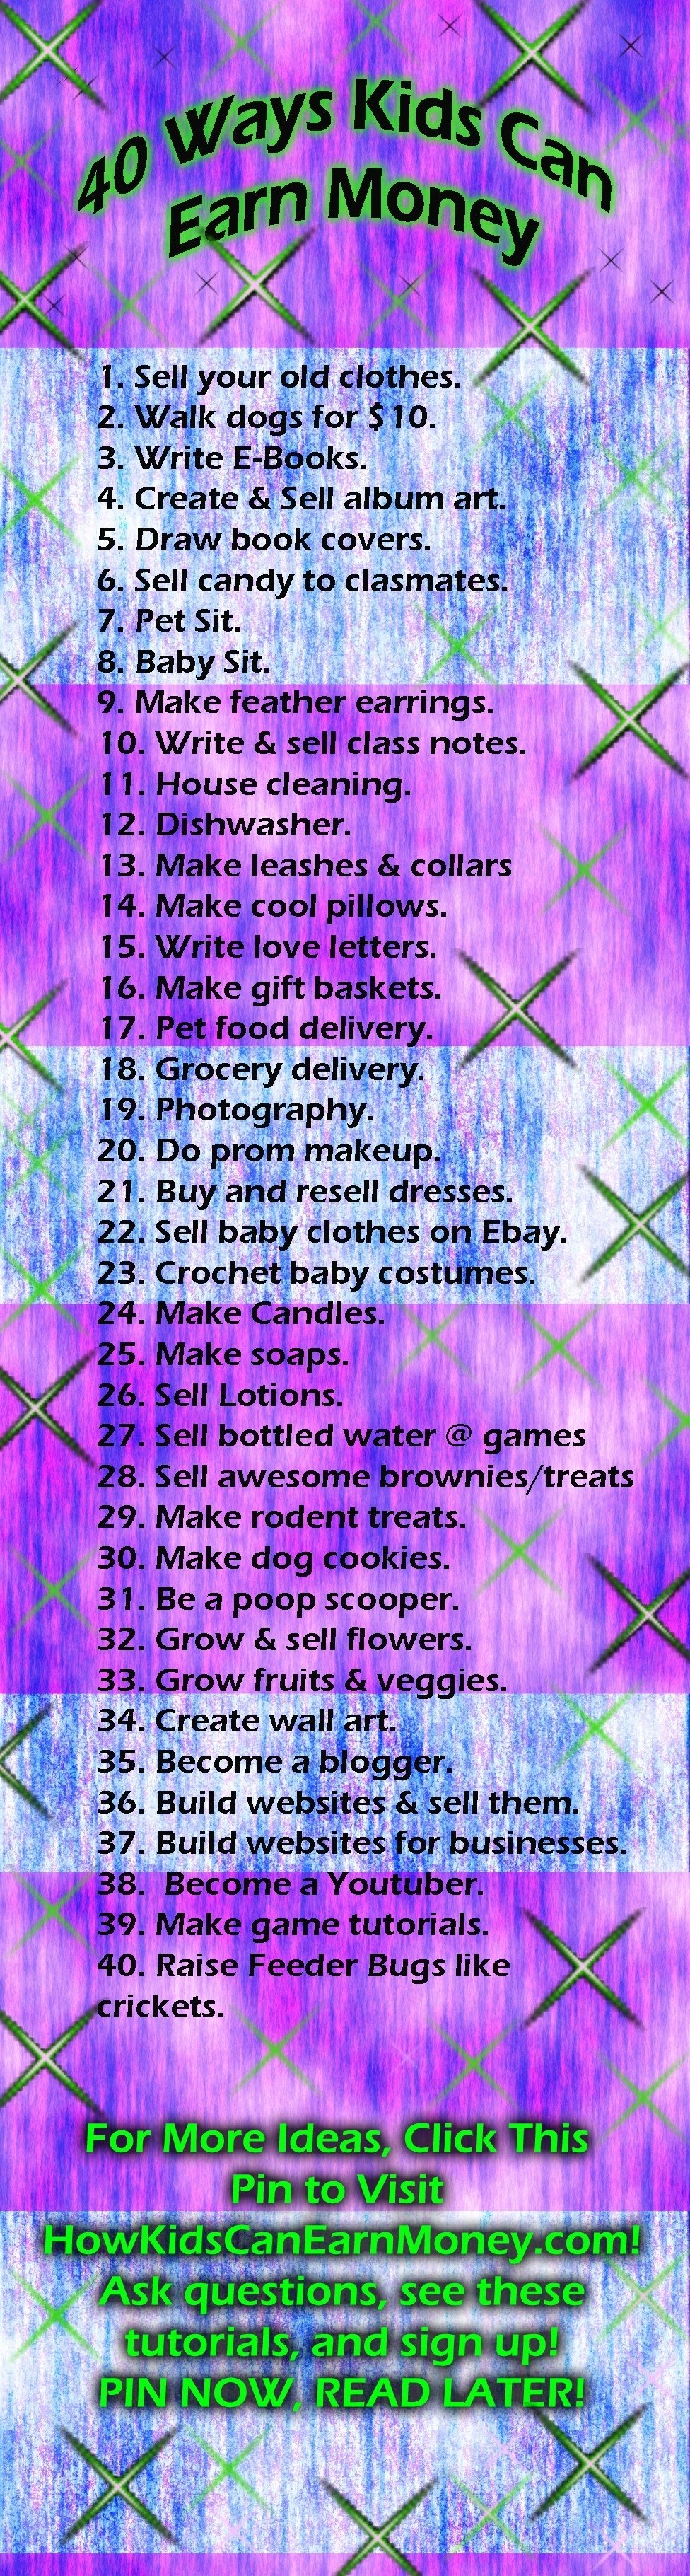 10 Attractive Ideas For Kids To Make Money e28b86100 ways how to make money as a kid todaye28b86 1 2020